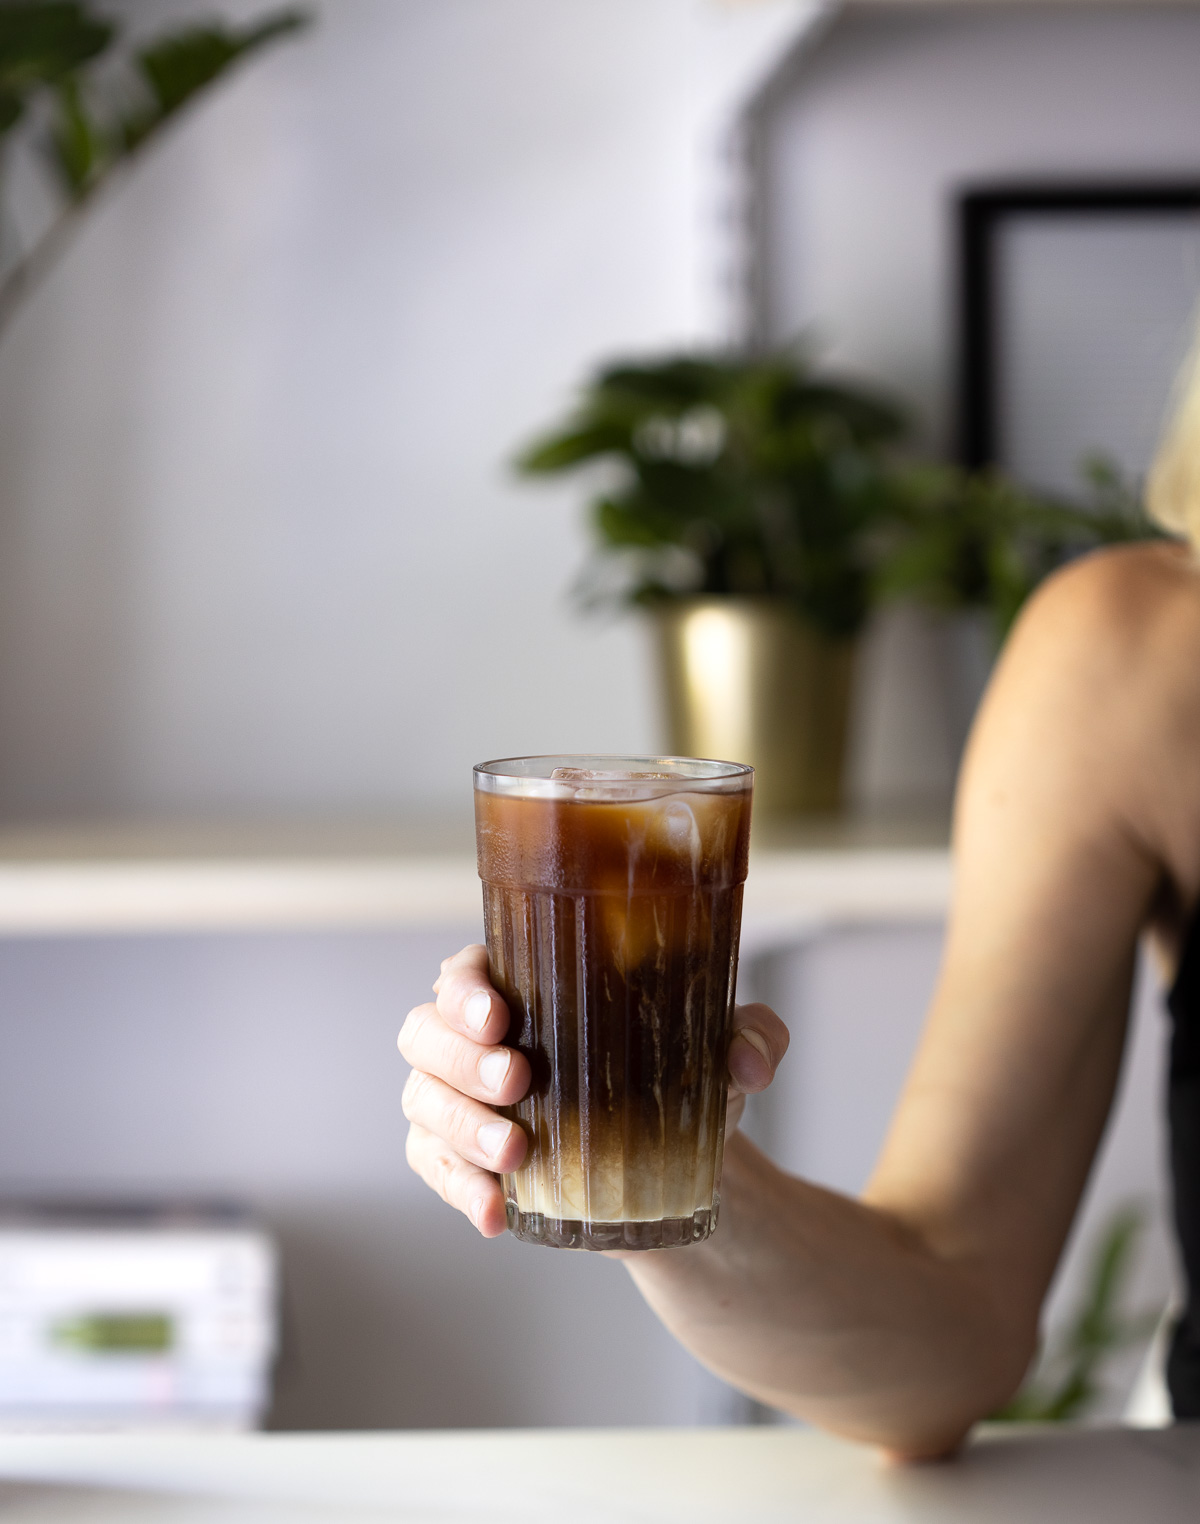 A woman's arm and hand holding a glass of iced milky coffee.